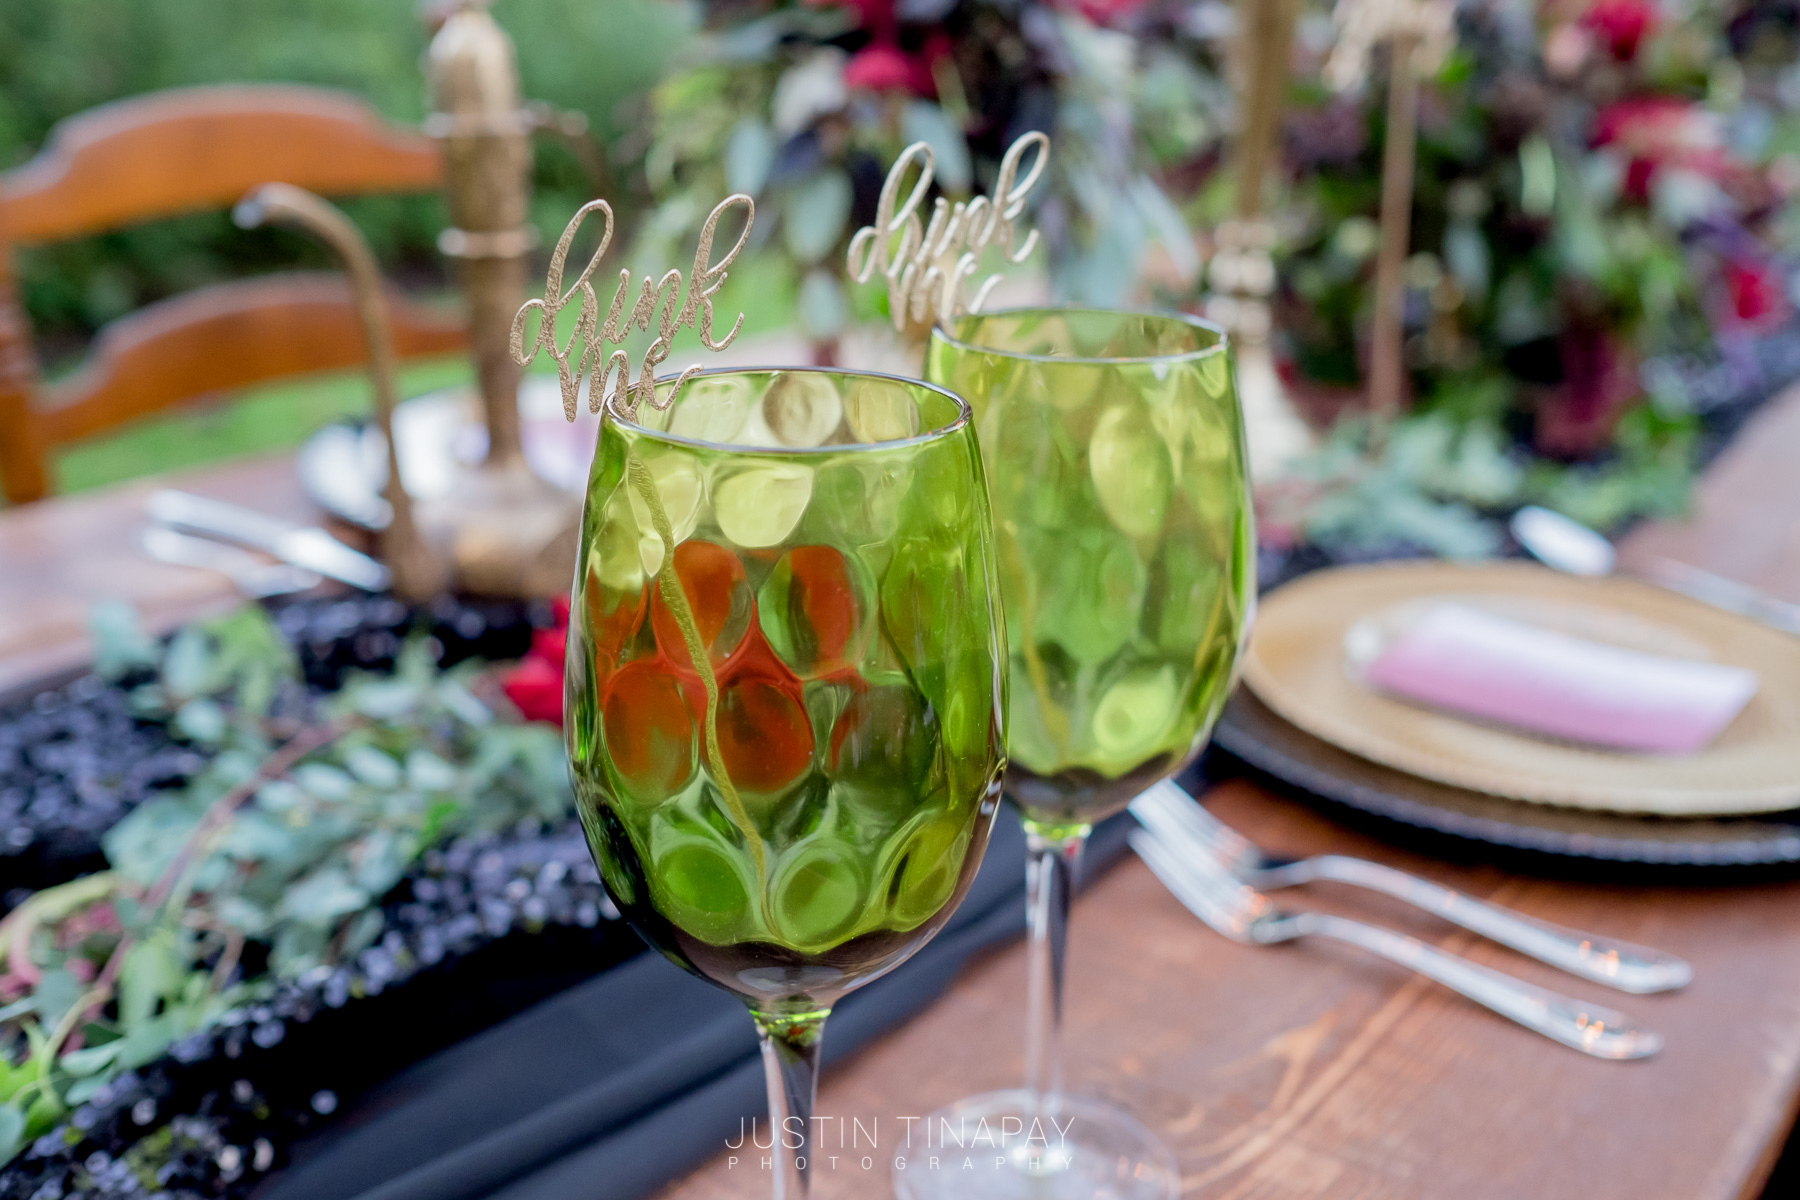 Use green glassware to wow your guests during cocktail hour and your reception. This unexpected and a great way to put a unique twist on a big trend!